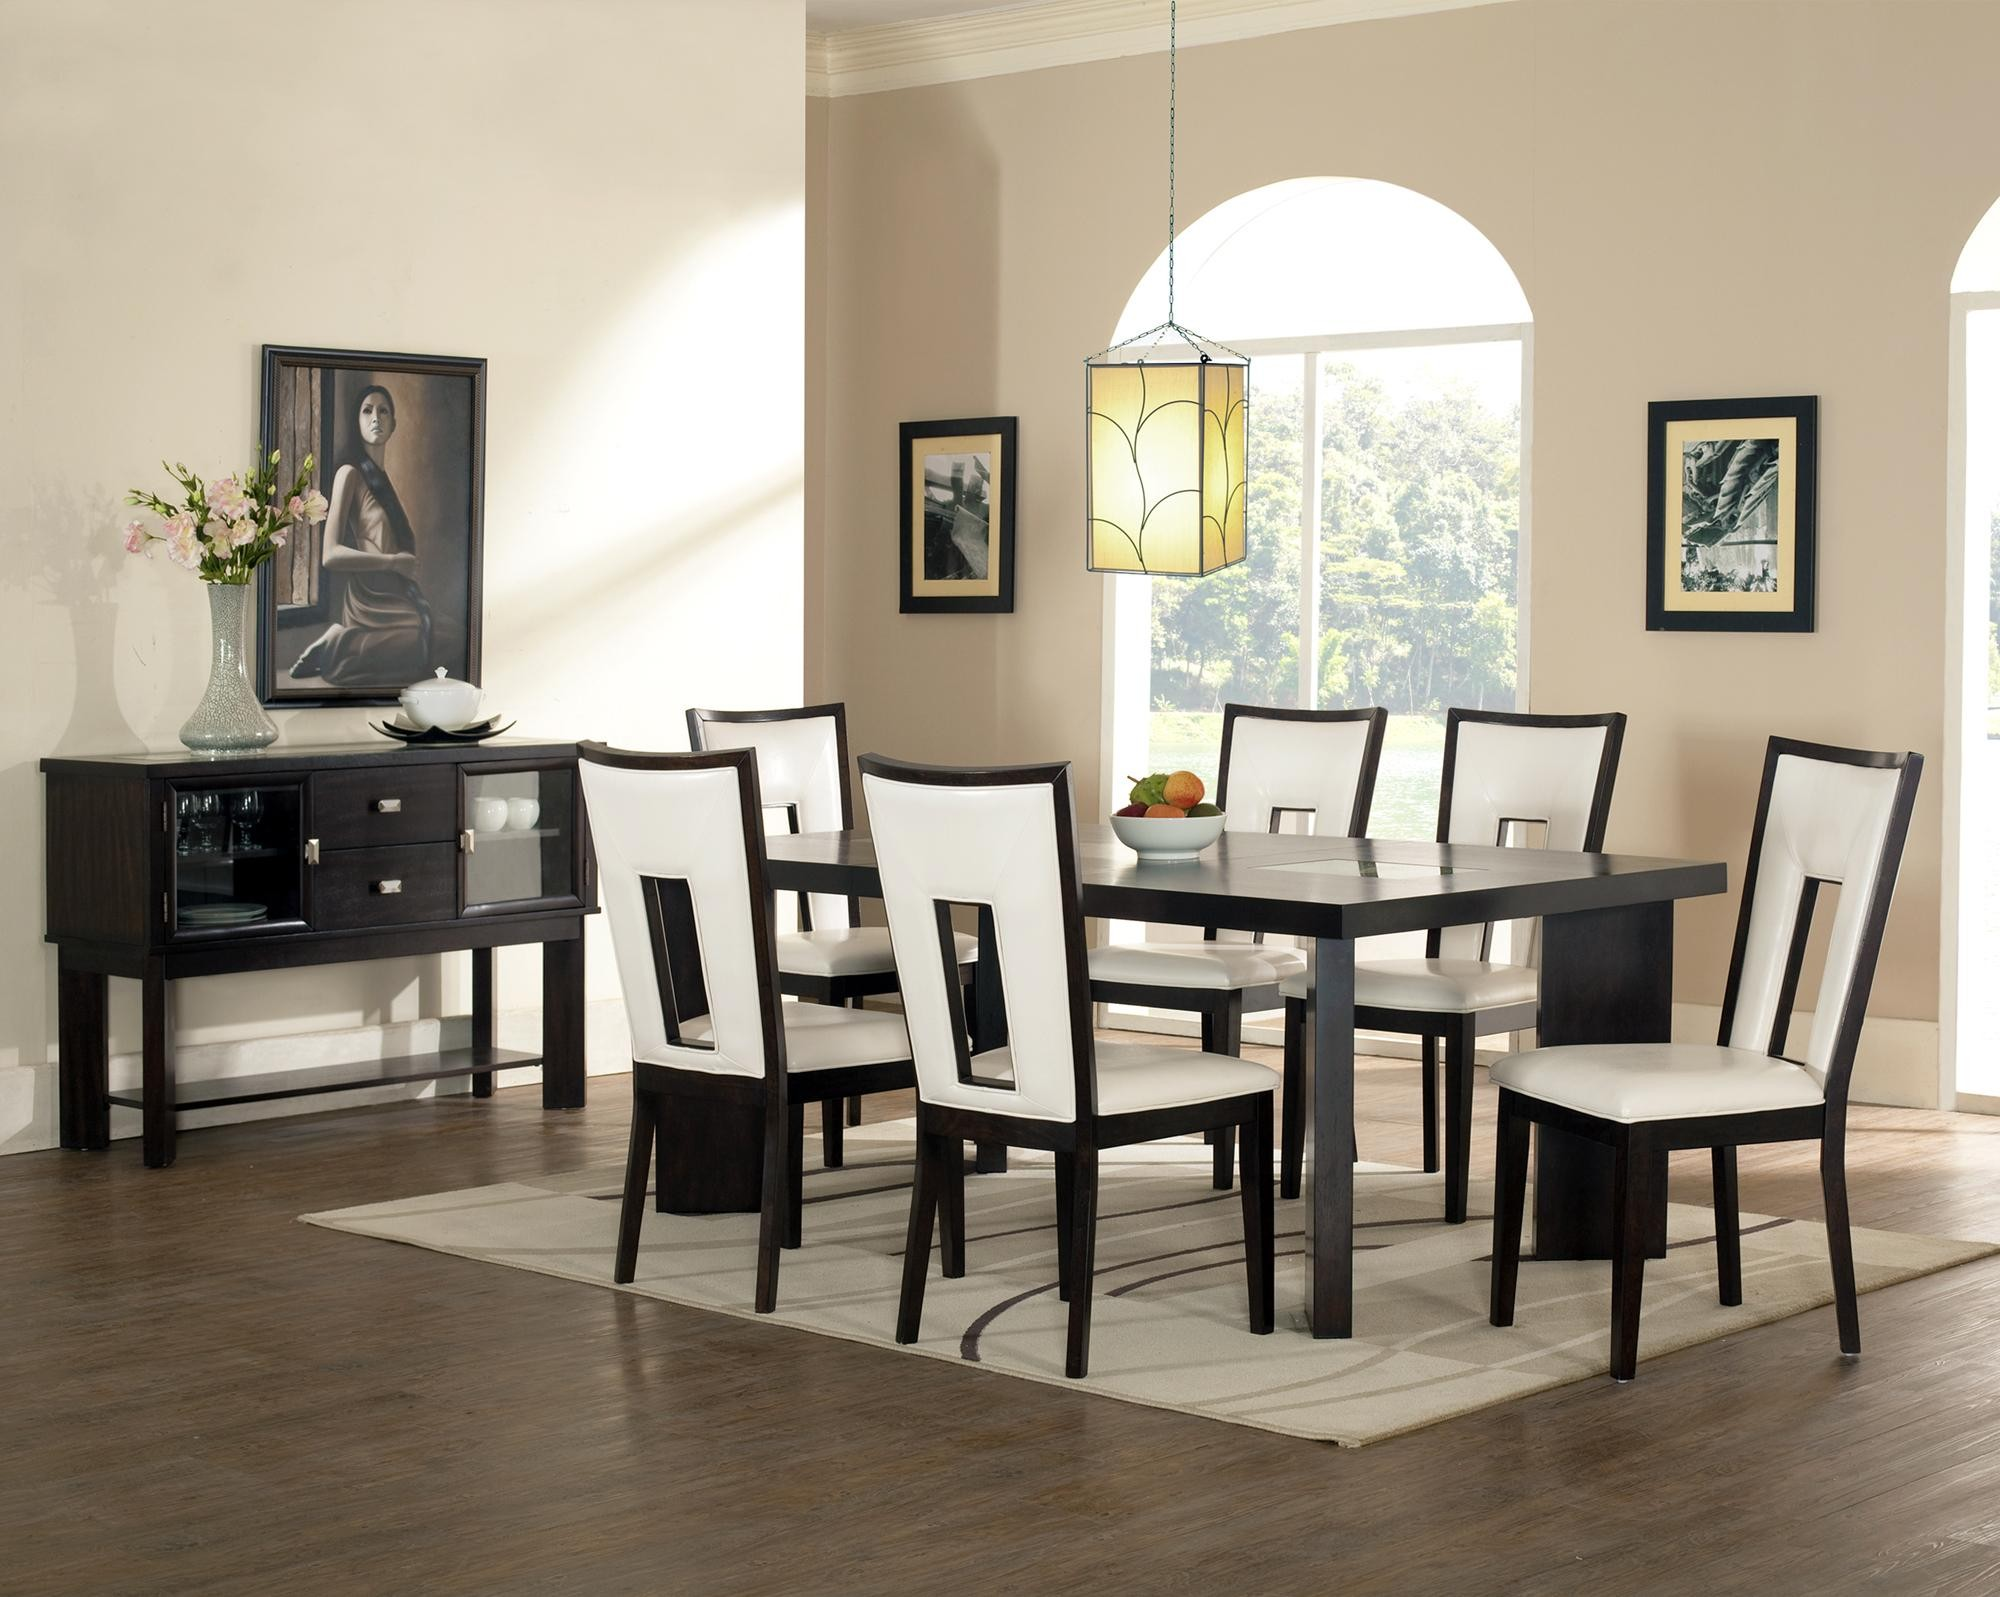 Dining Room Photos HD | Full HD Pictures